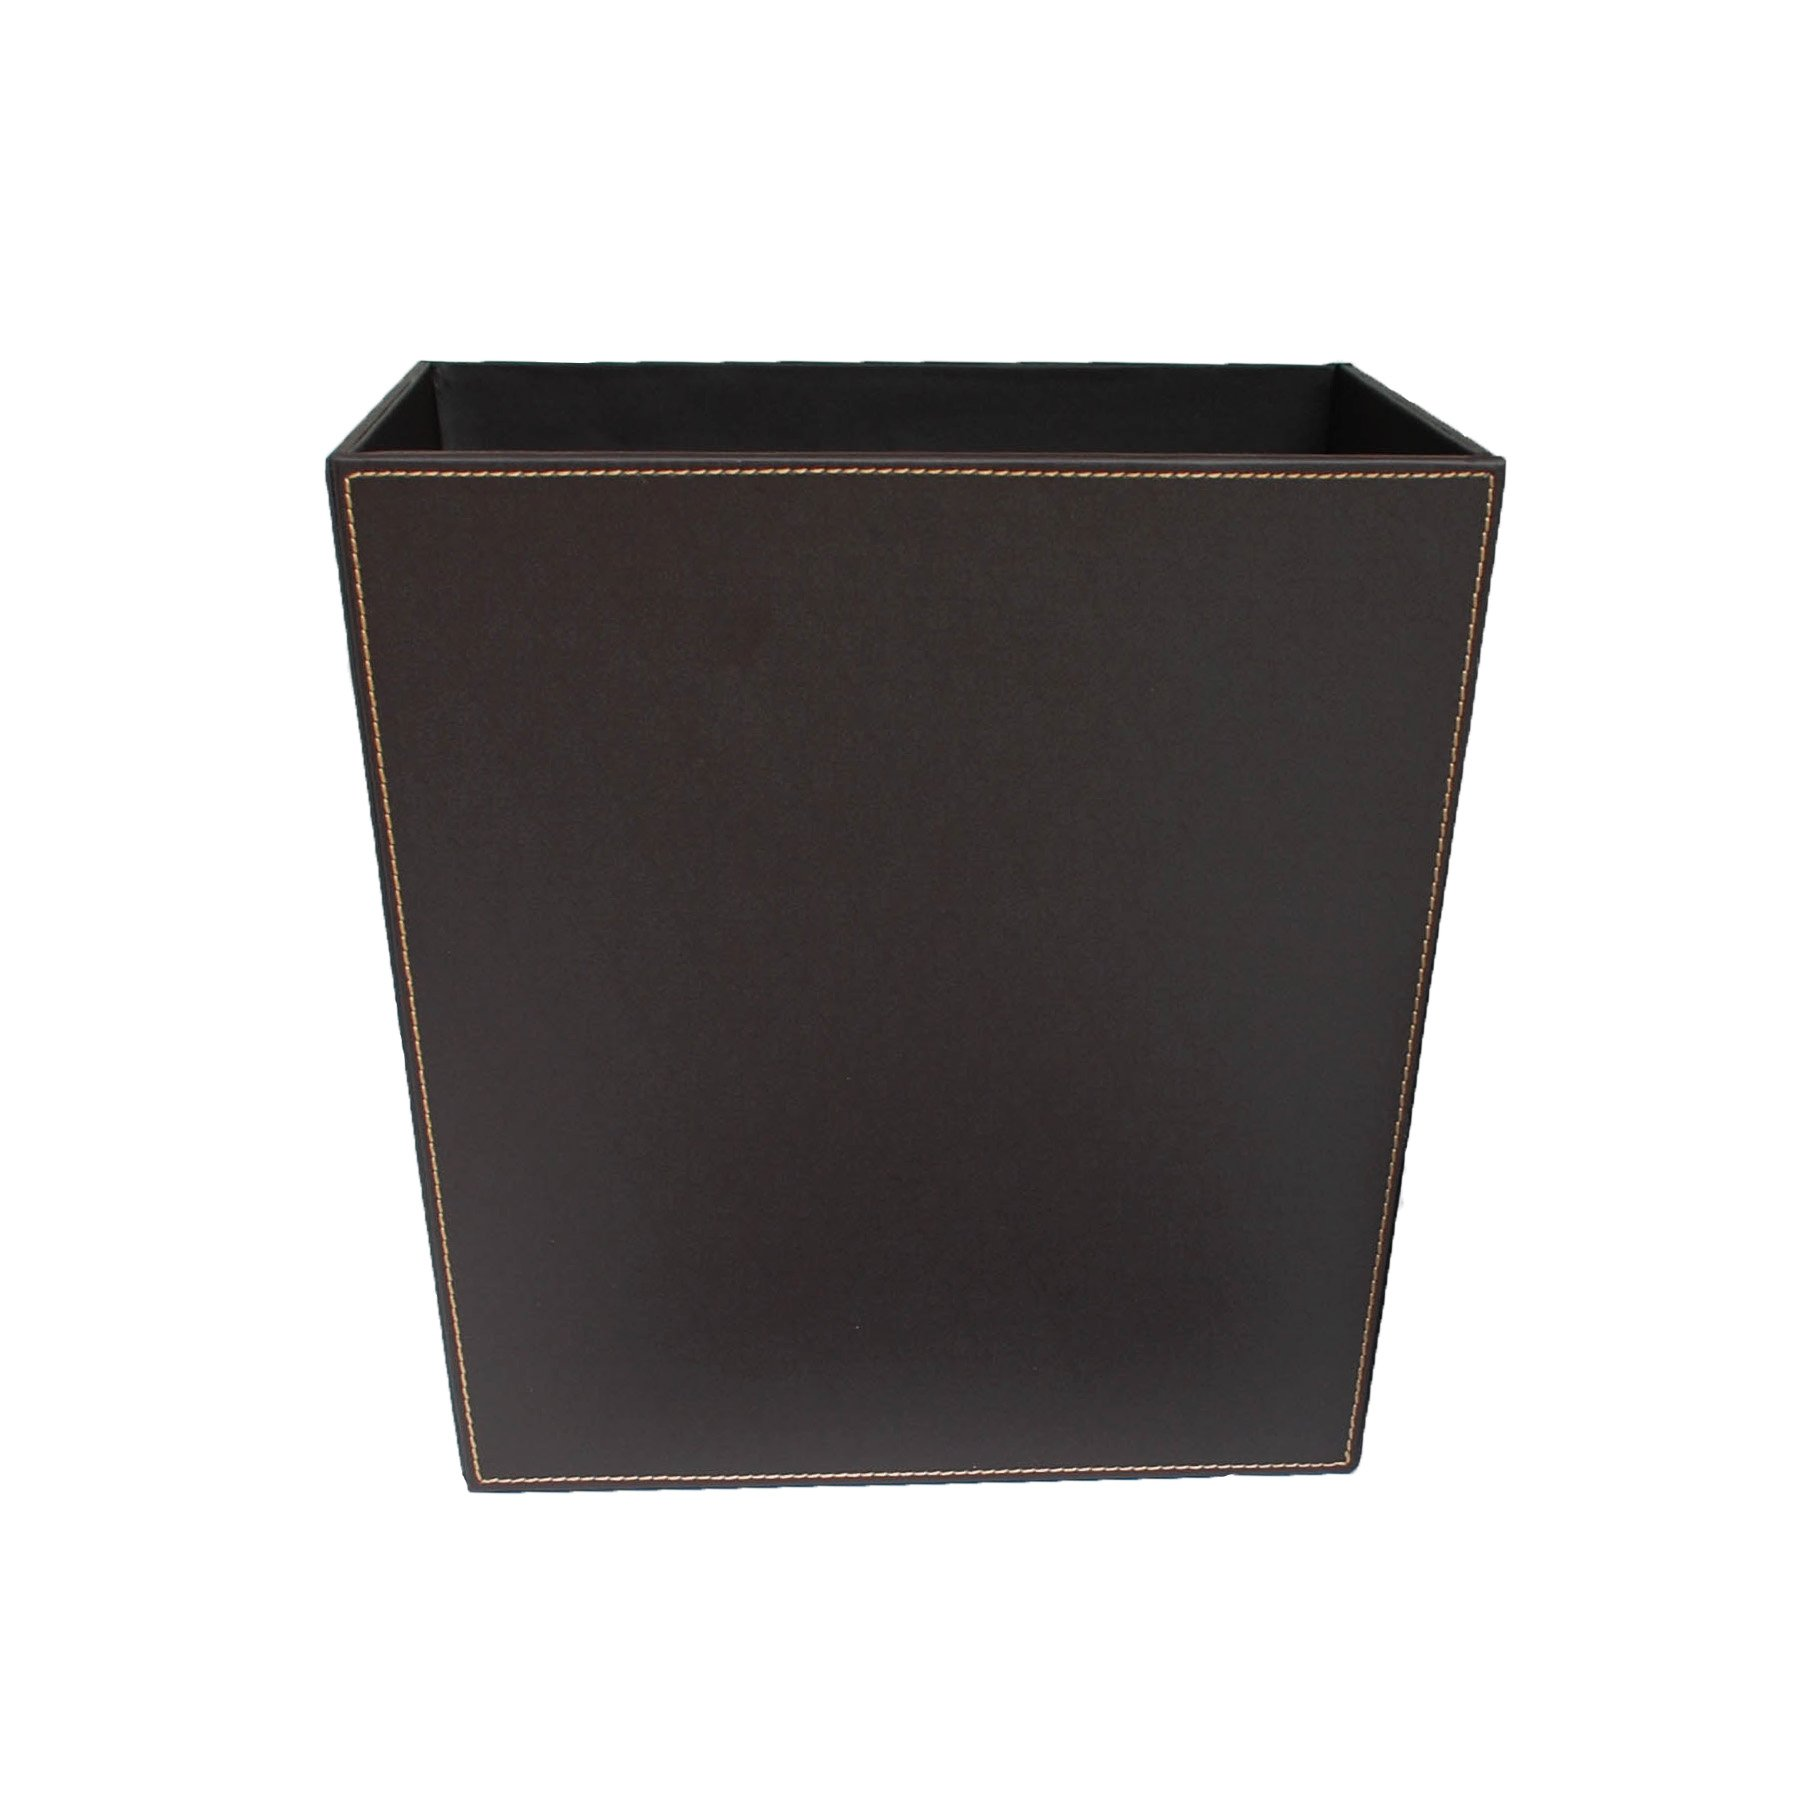 Kraftware Stitched Chocolate Waste Basket with Plastic Liner, Waste Basket, Bathroom Hotel, Hospitality, Décor, Office Trash Can, MADE IN U.S.A.